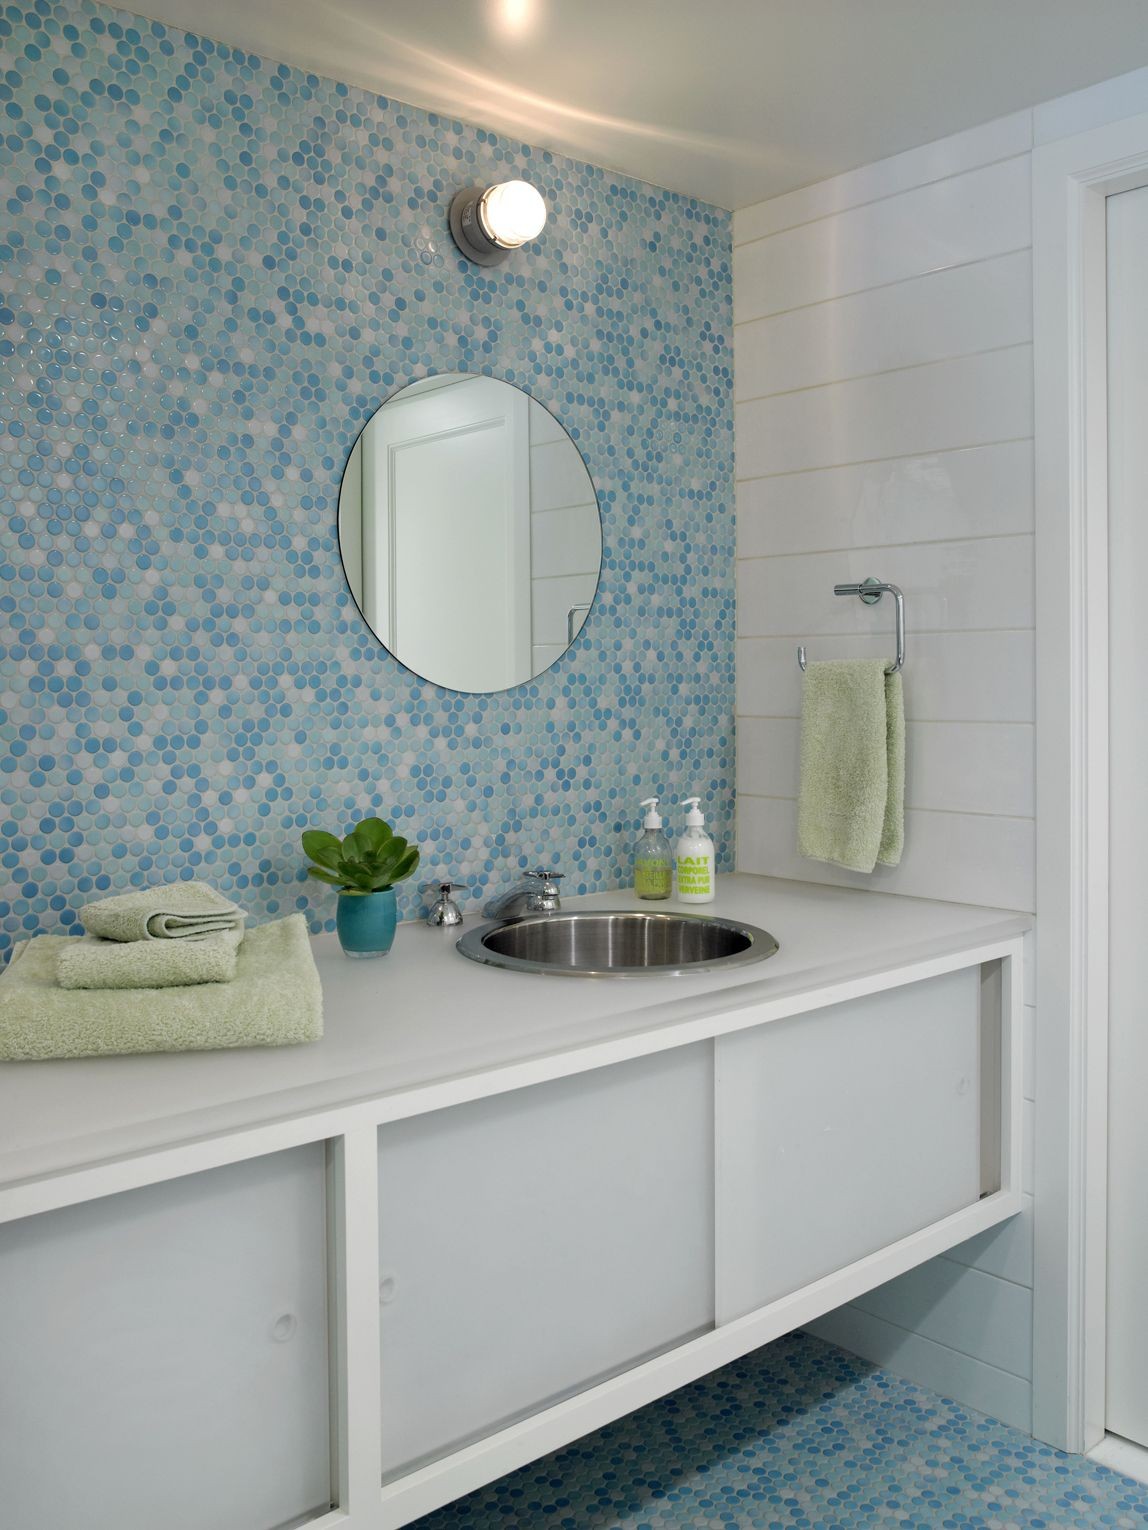 Bathroom Ideas Tiled Walls